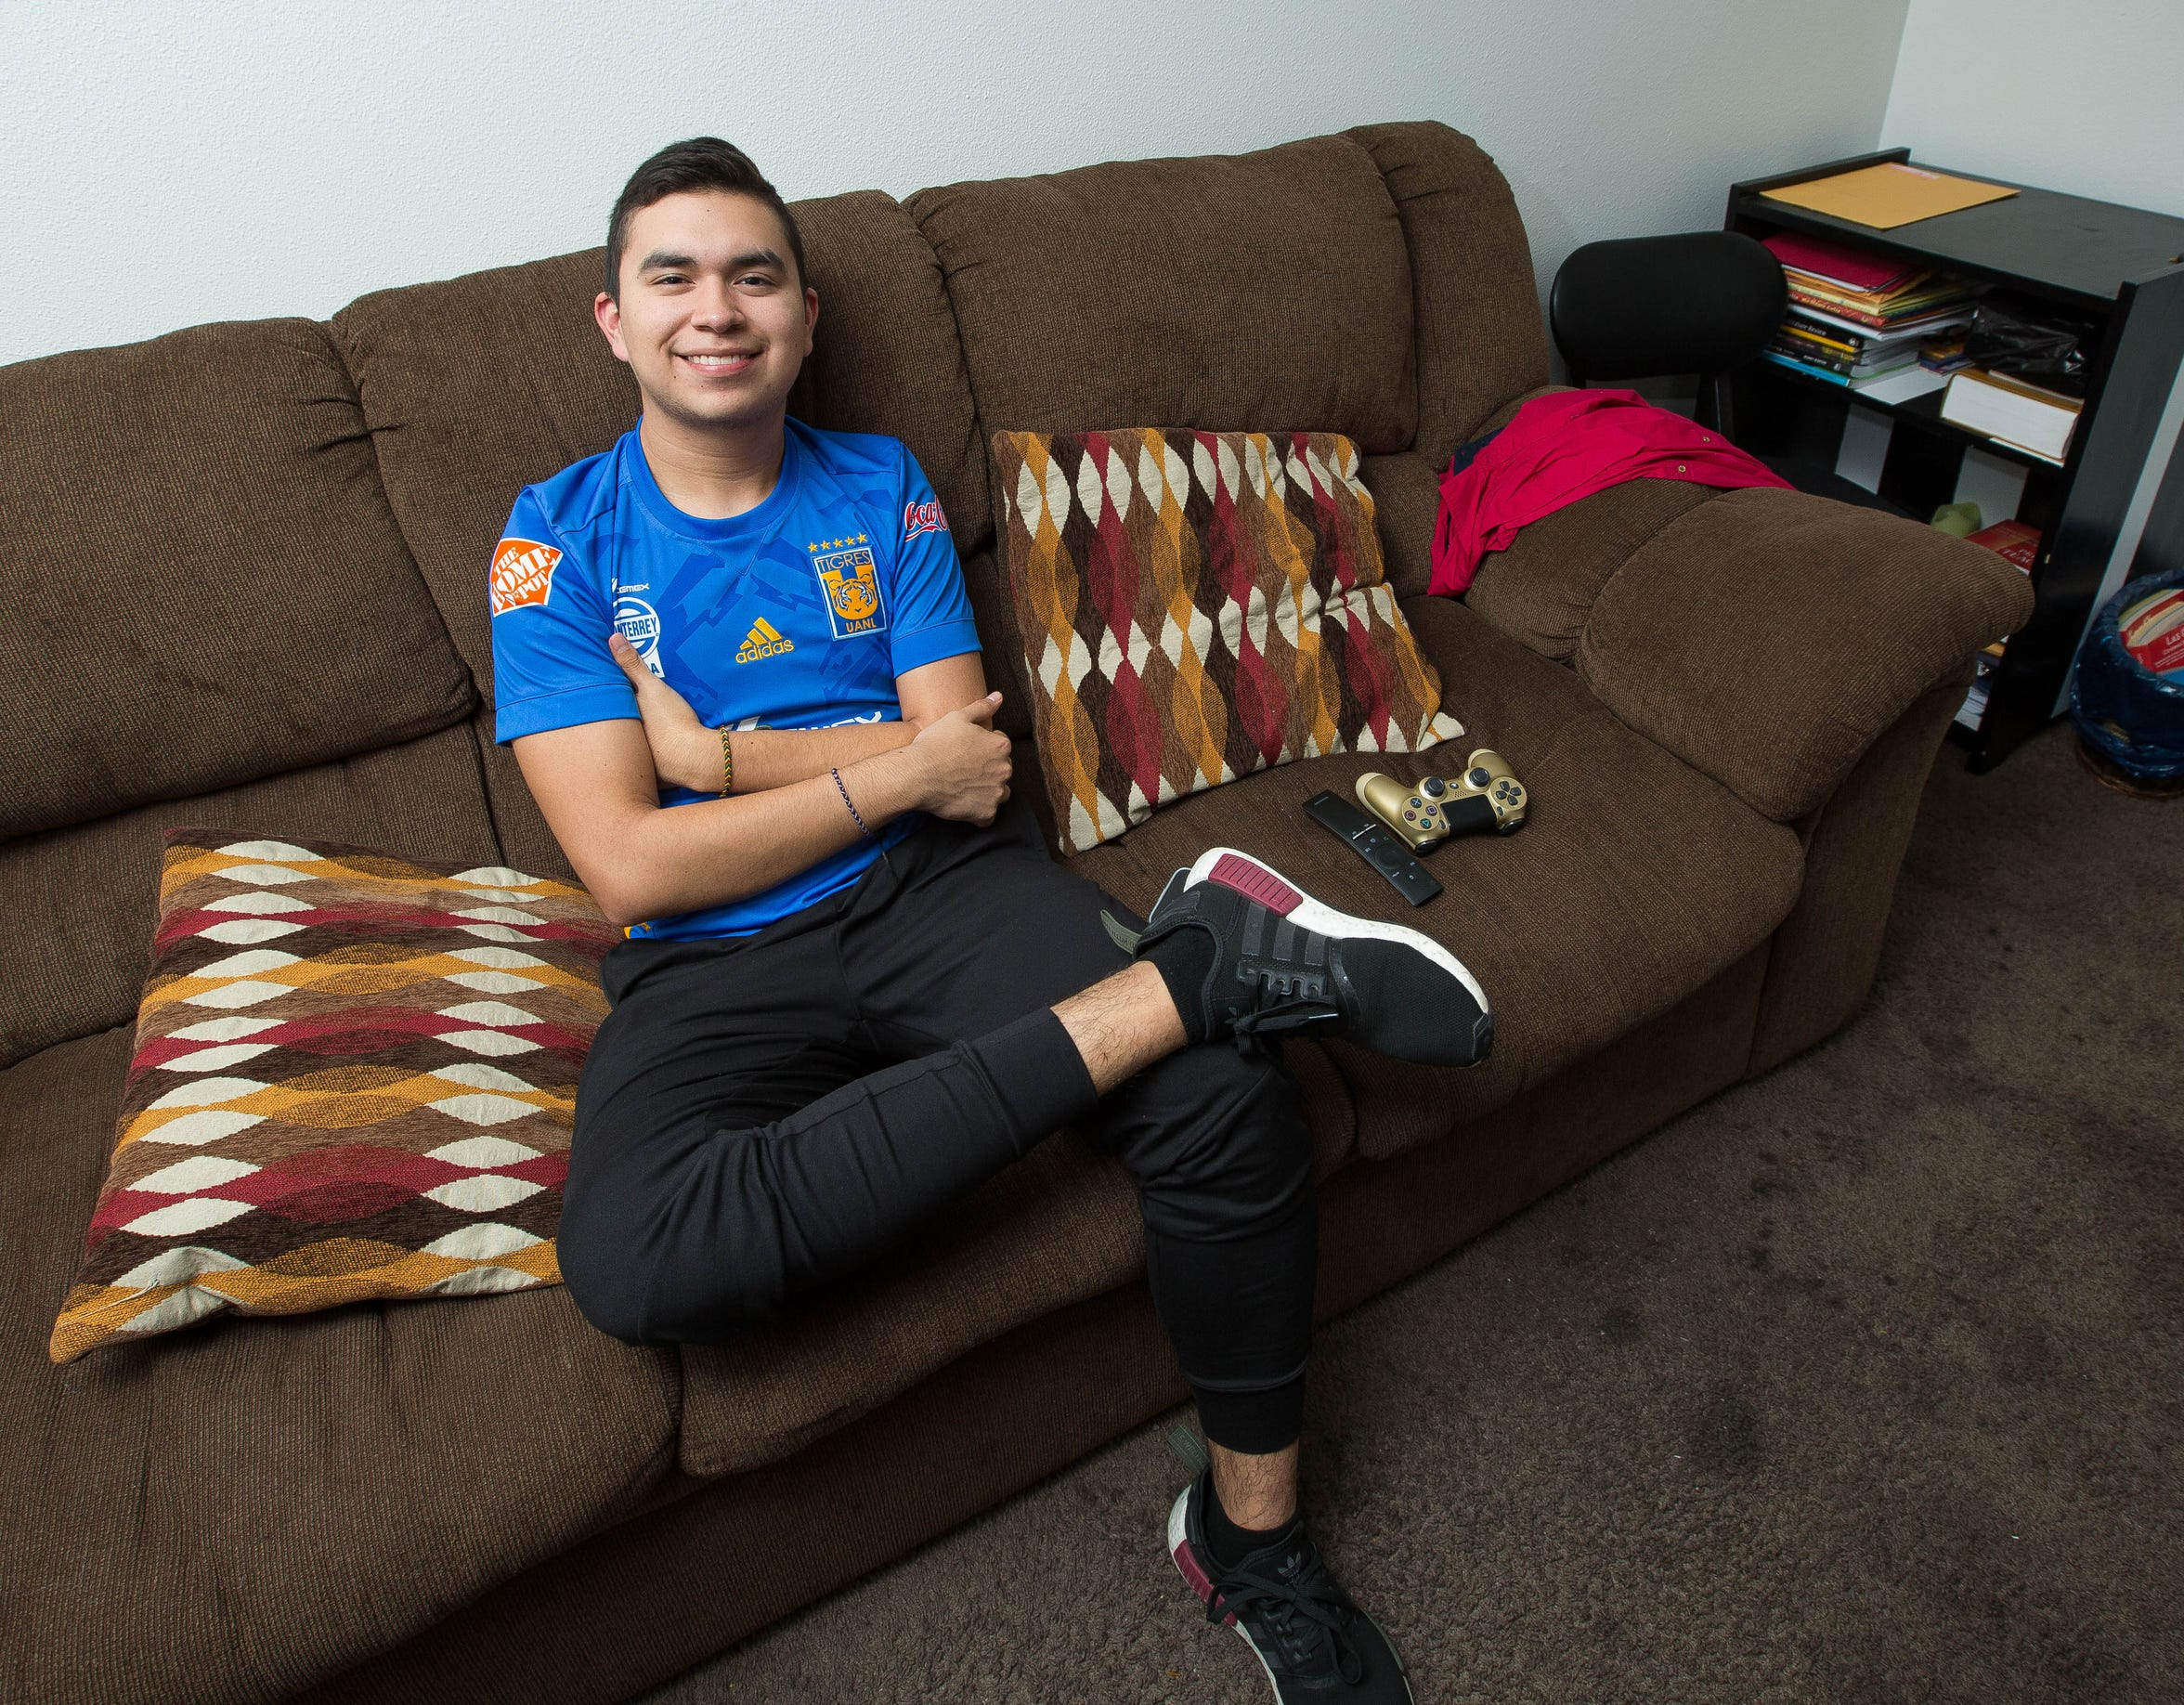 Armando Cantú, a senior at Centennial High School, works 20 hours a week at Bosa Donuts & Burritos and enjoys running the Triviz trail when he's not in school.